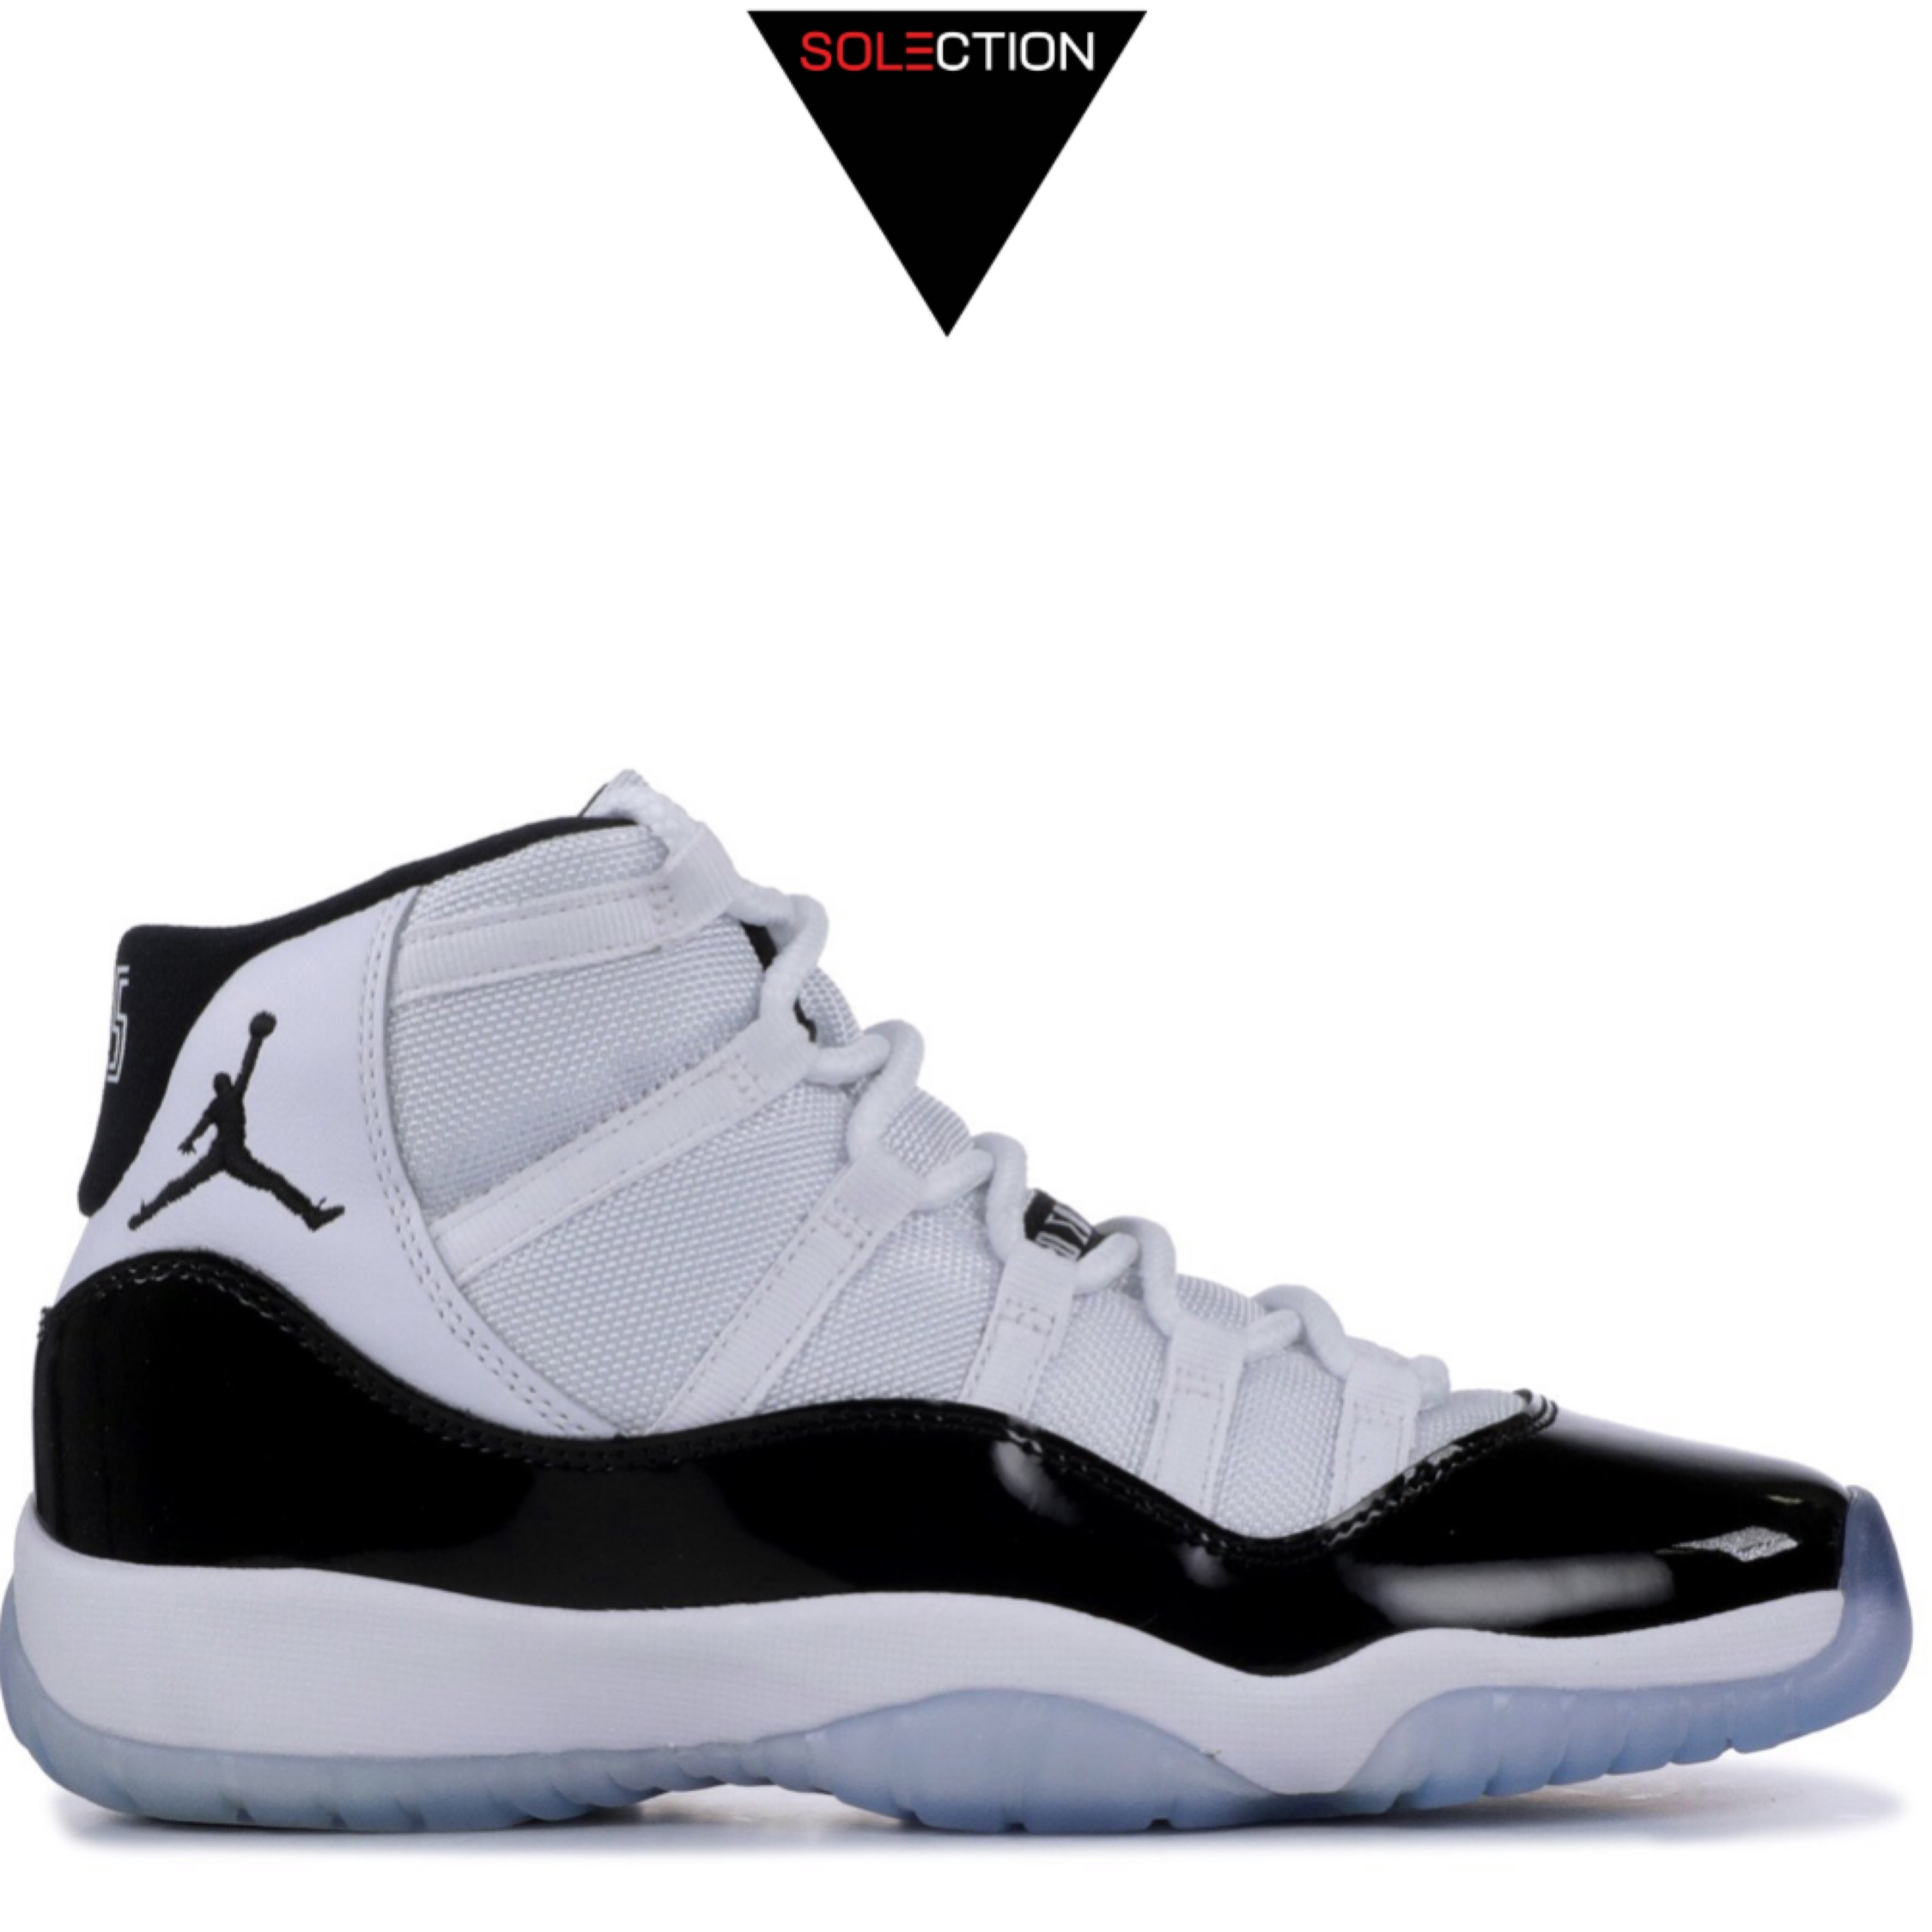 outlet store d9f9e 01160 Nike Air Jordan 11 Concord Retro Gs 6Y